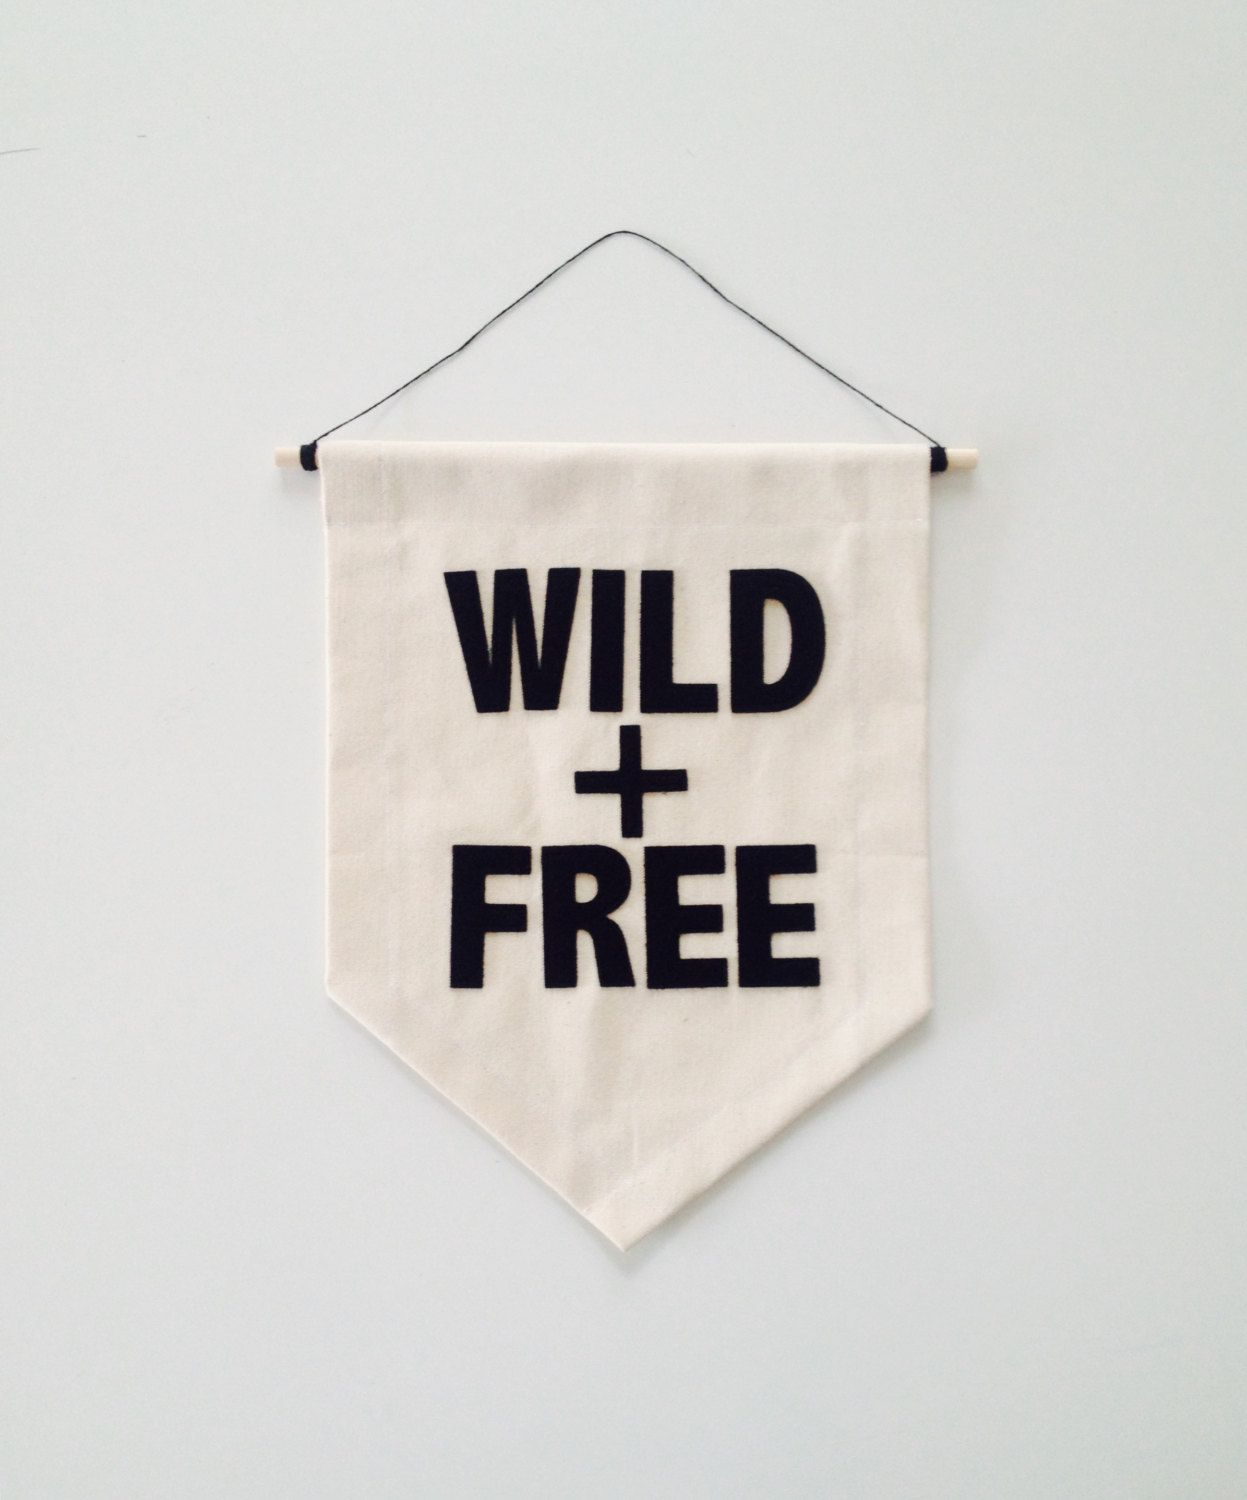 Hanging Flag On Wall canvas fabric wall banner - wild + free - customizable - 10.5 x 14